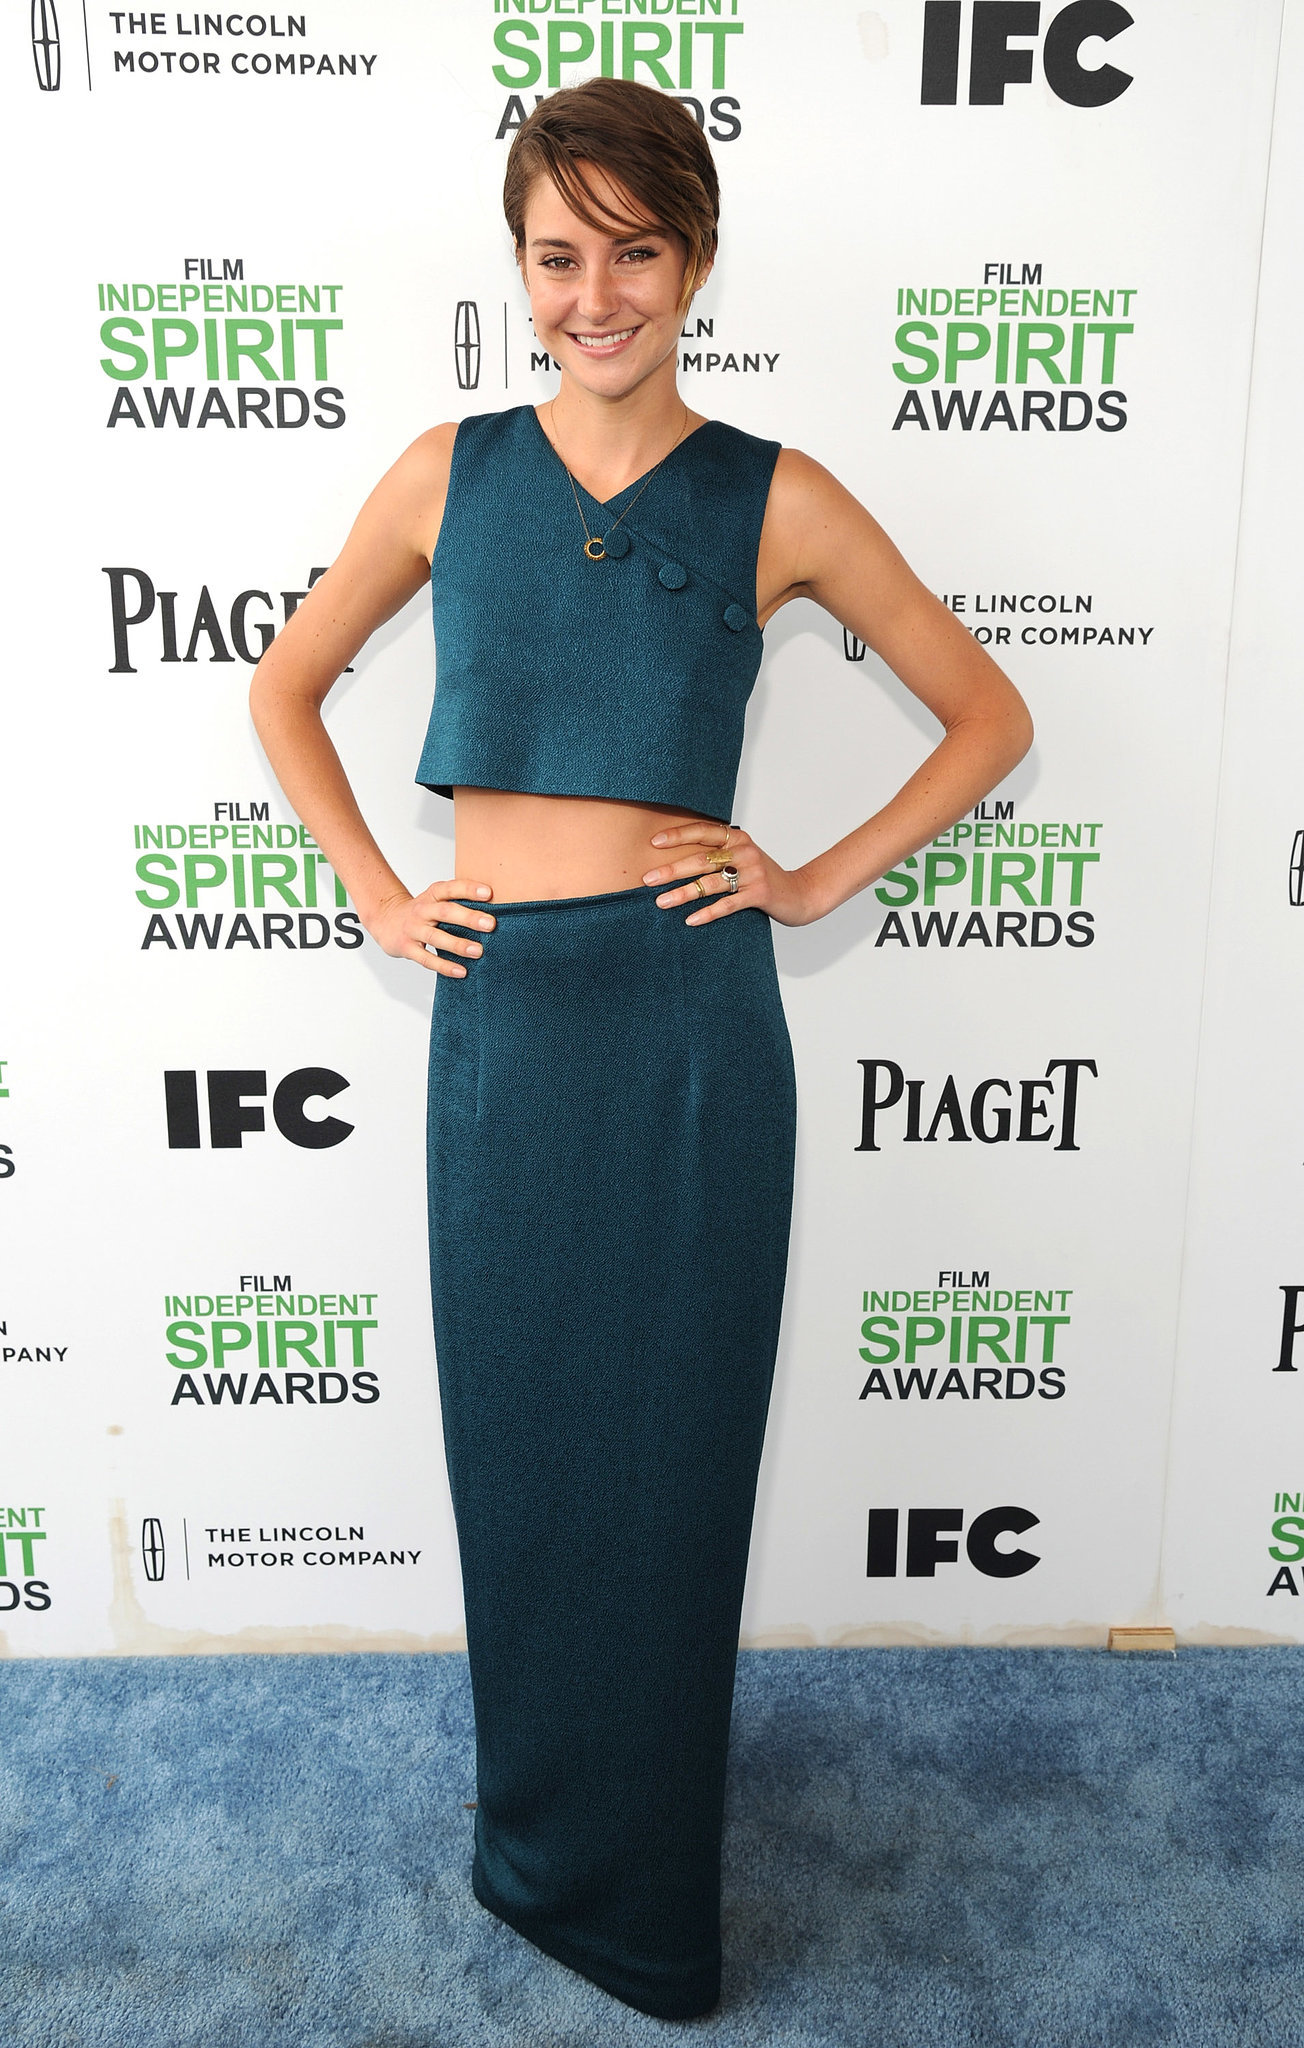 Shailene Woodley at the 2014 Spirit Awards